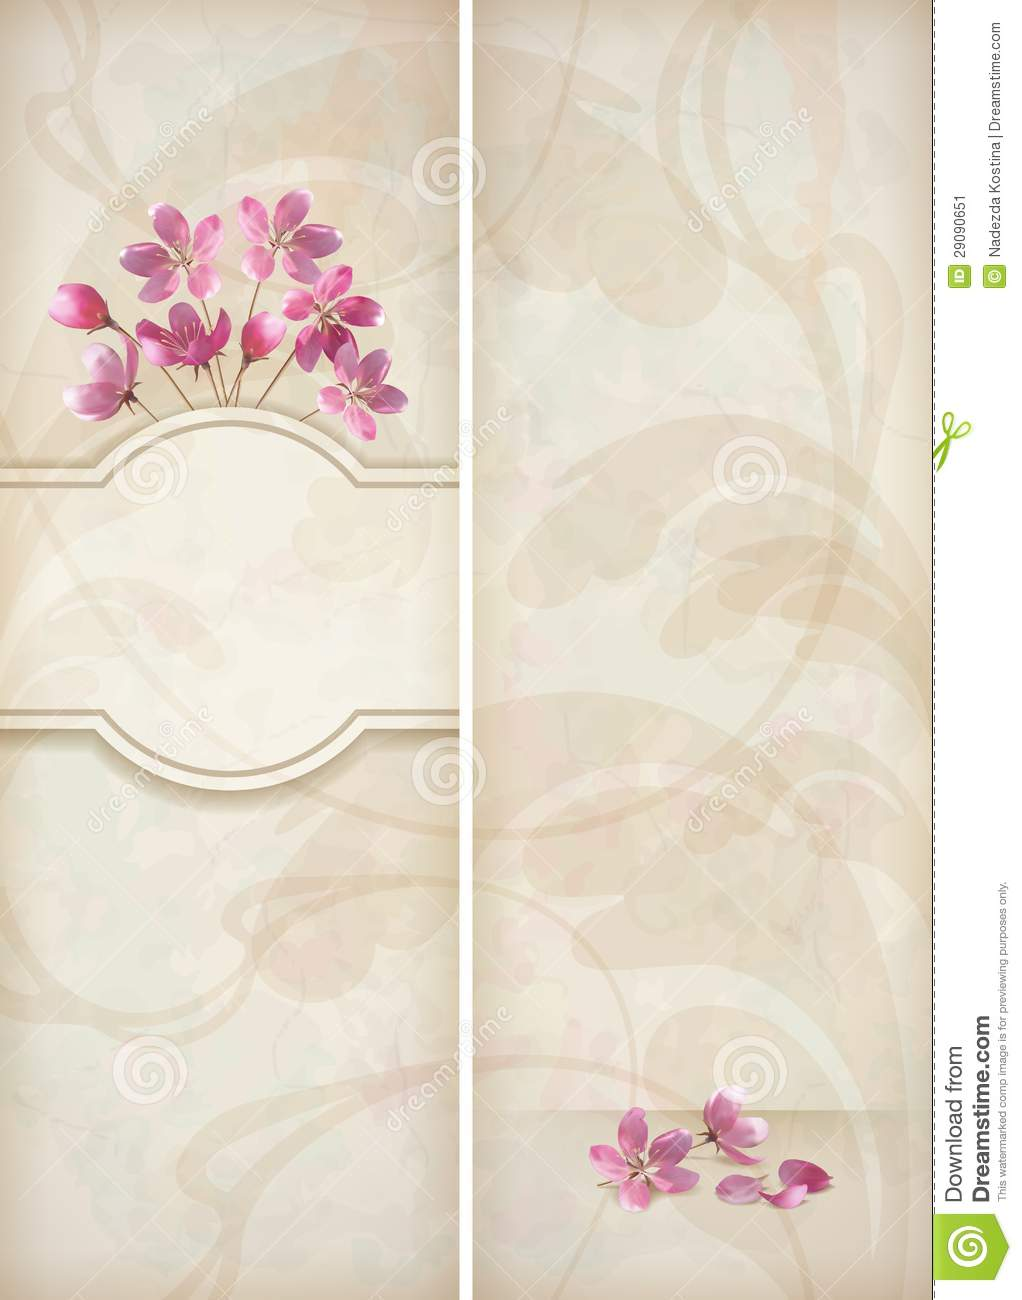 floral decorative wedding menu template design stock image